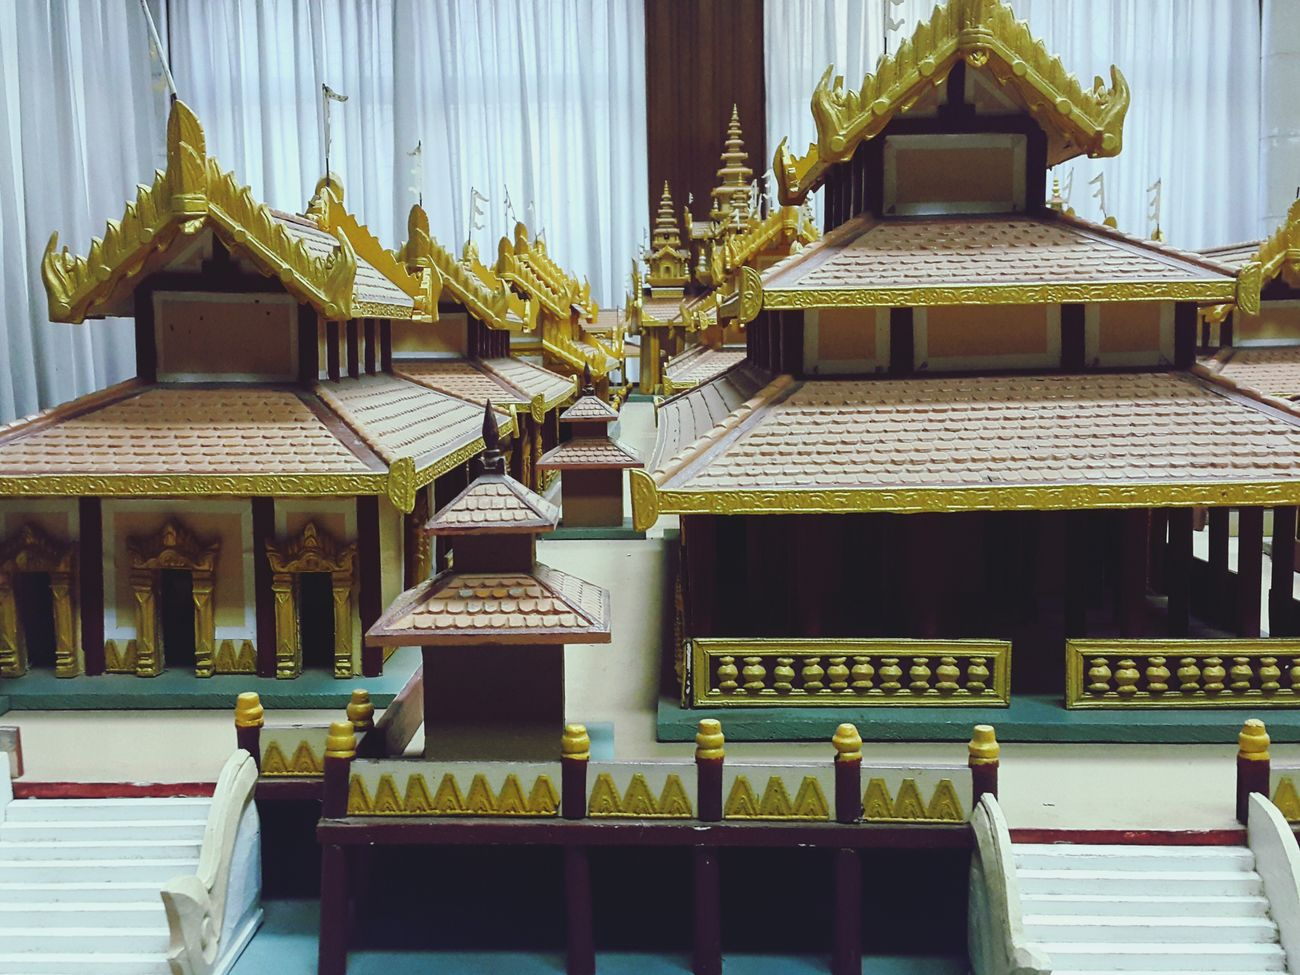 Palace Of Culture Bagan Ancient City History Museum  Historical Art Bagan Periodical Historical Glory Small Designs Myanmararchitecture Bagan In Myanmar